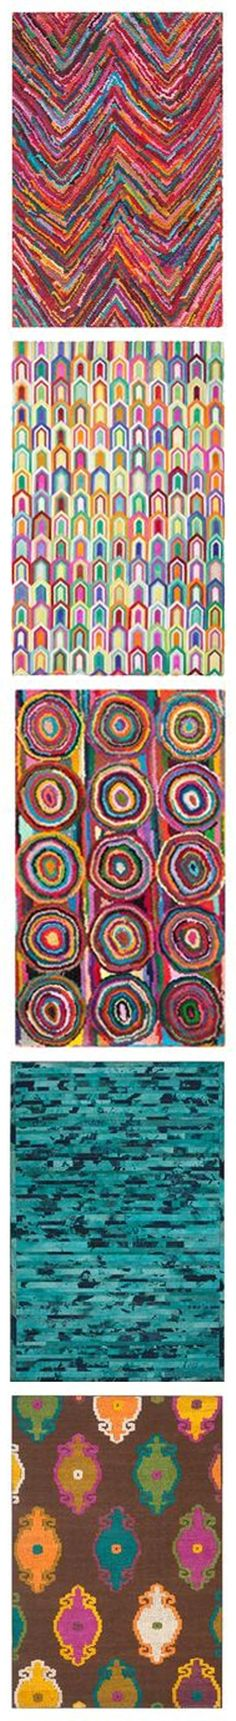 Cool rugs! But I am thinking how cool placemats would be -- made with beads in the pattern on the top. They would sound great! *tinkle tinkle* And feel so good when you held them.